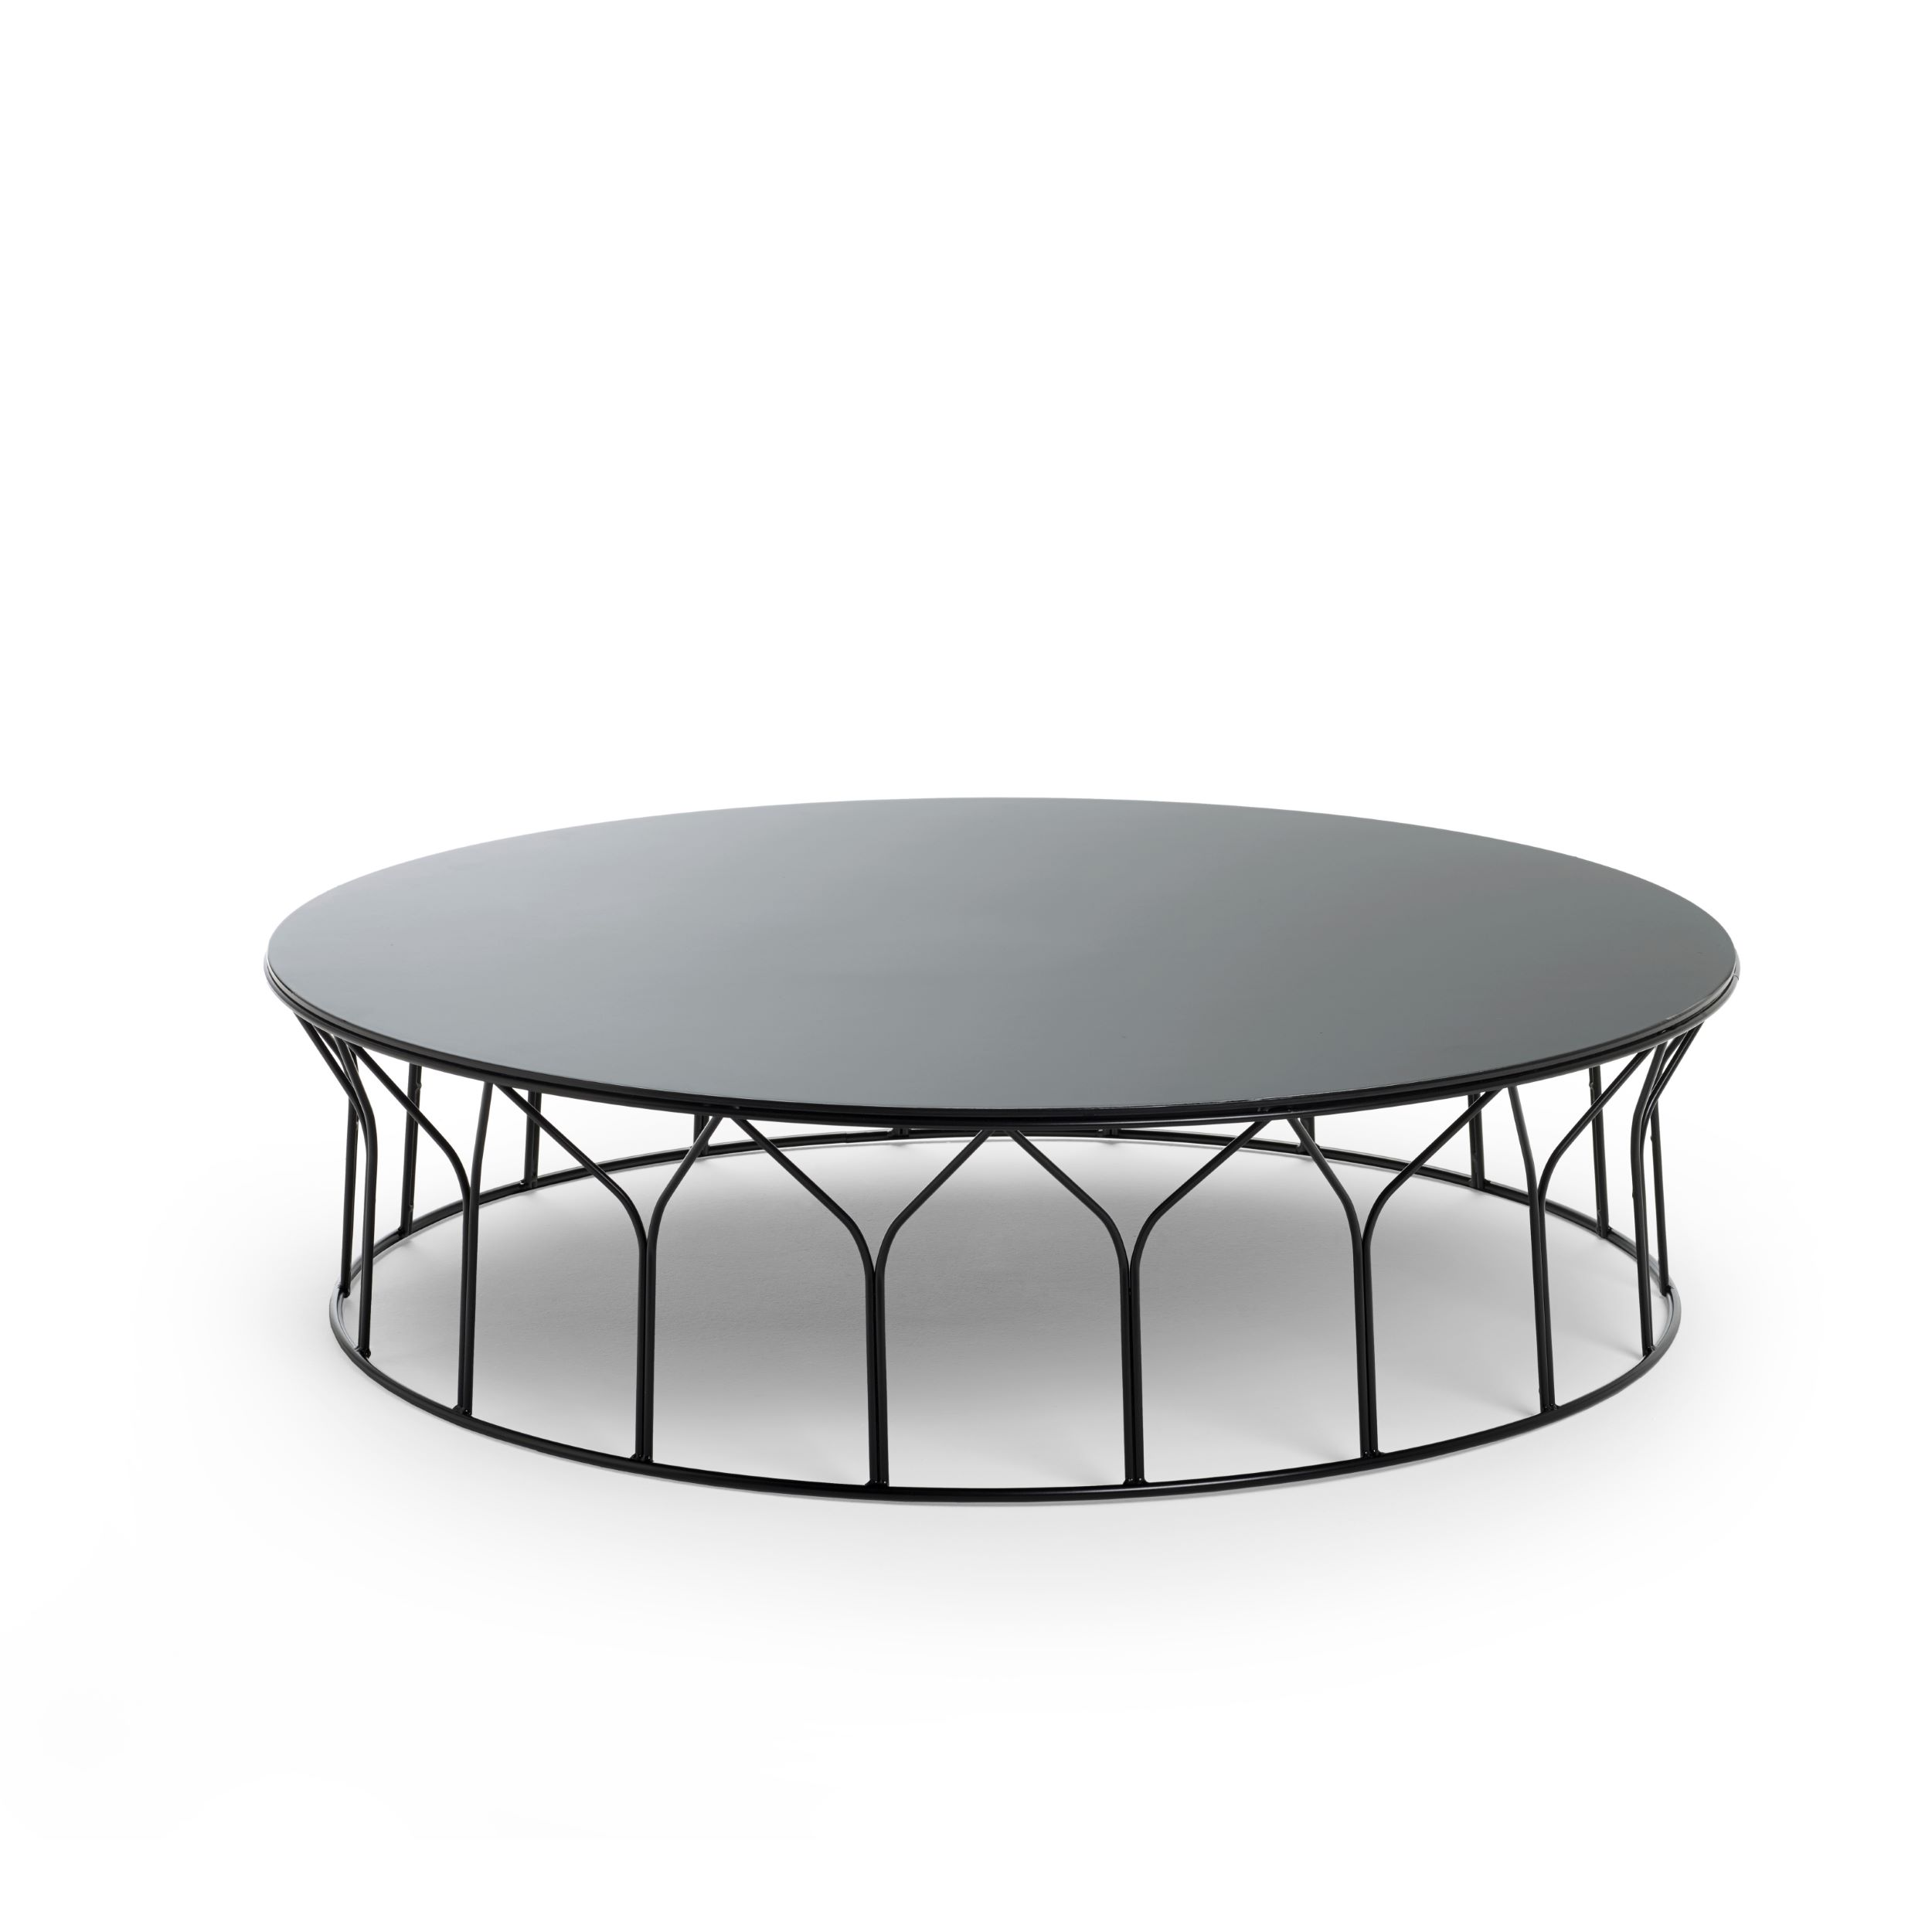 CIRCUS-PLANTER-Tables-Formfjord-offecct-104100-9090-896